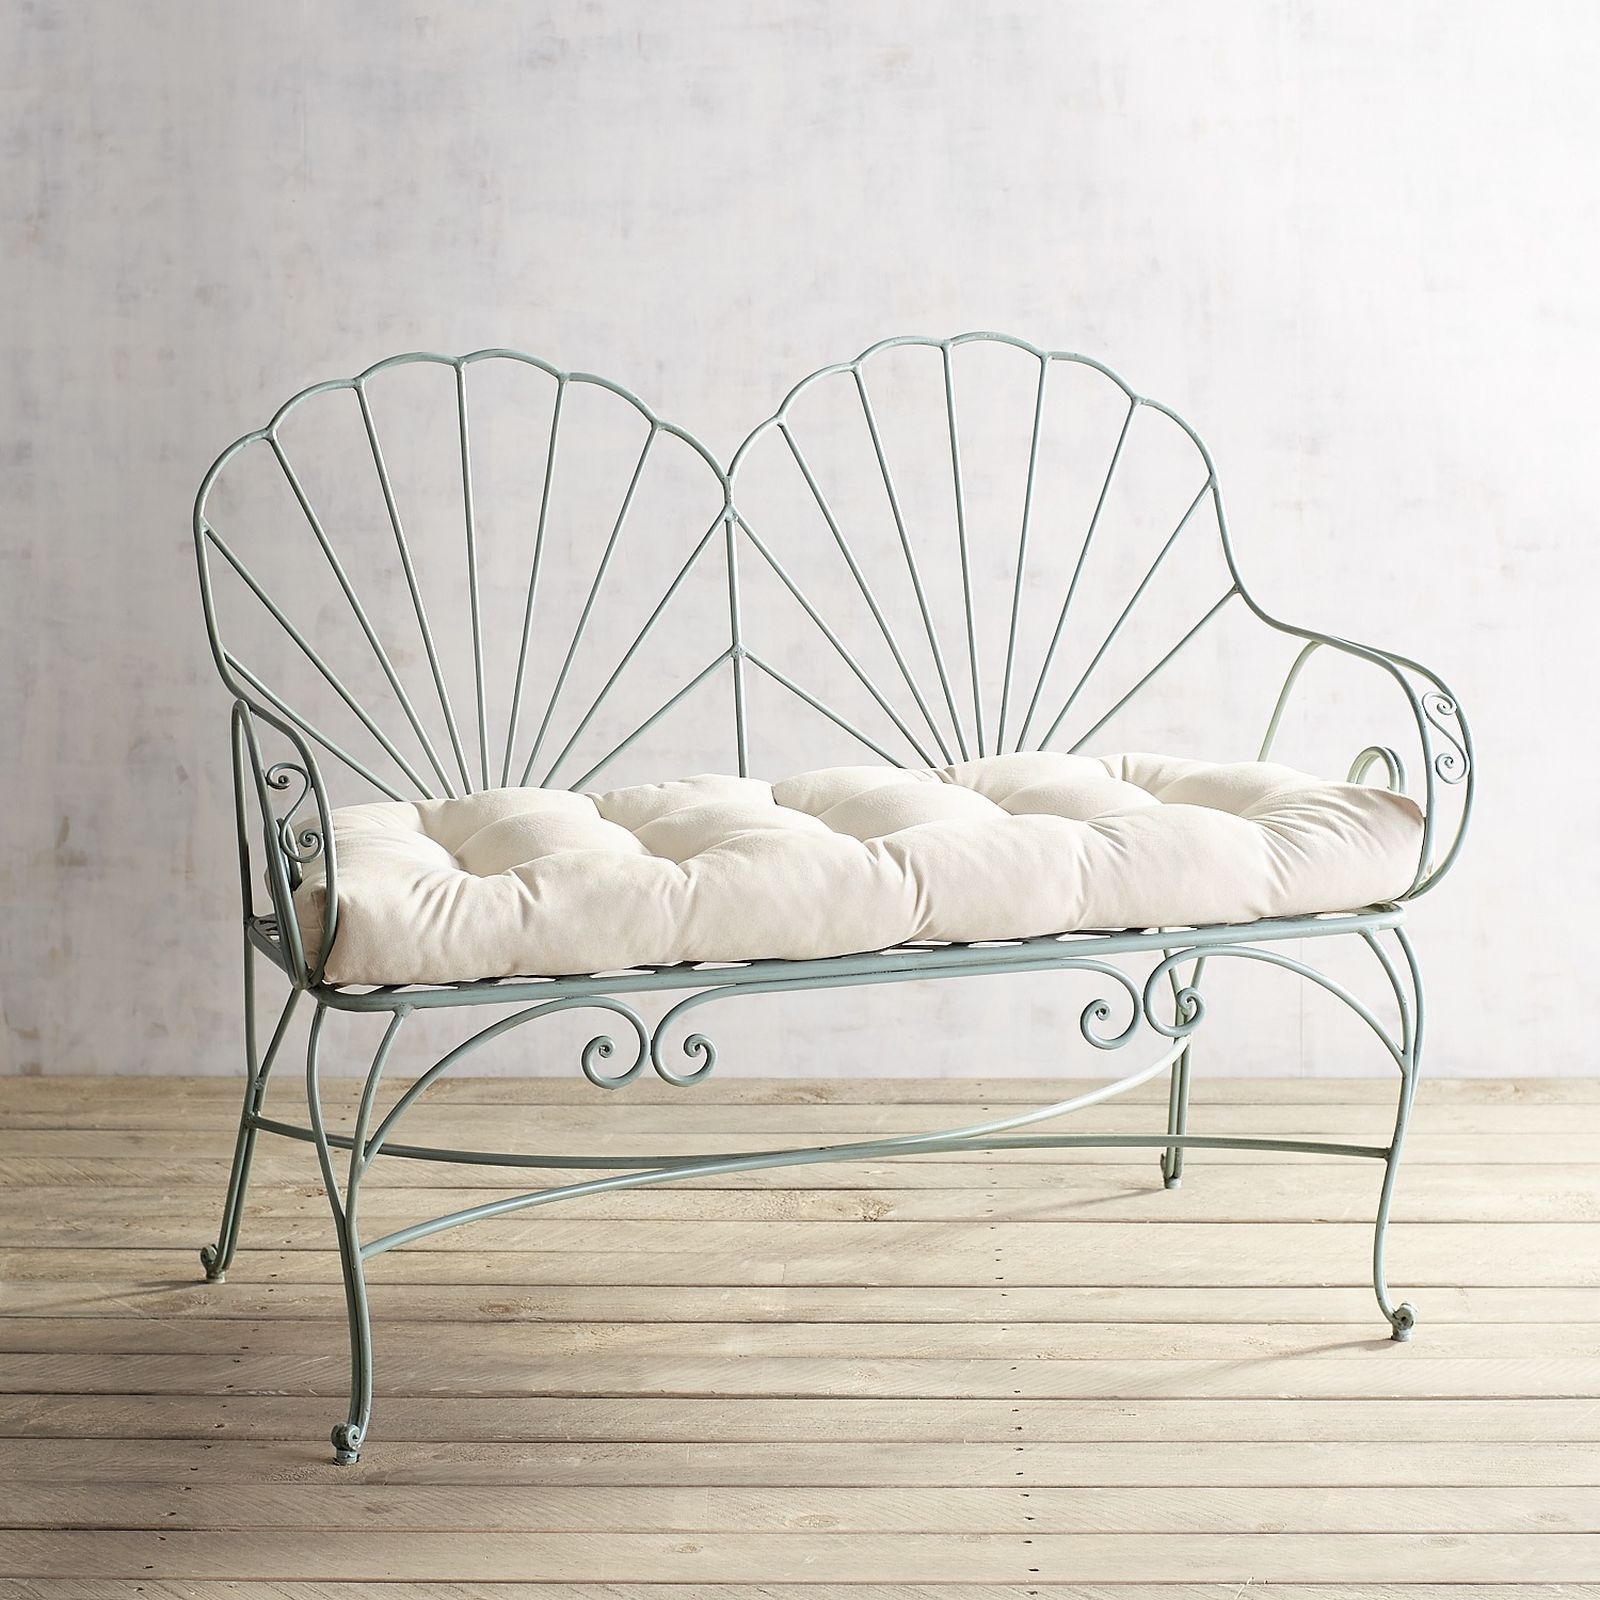 Teal Seashell Bench Pier 1 Imports Wrought iron bench